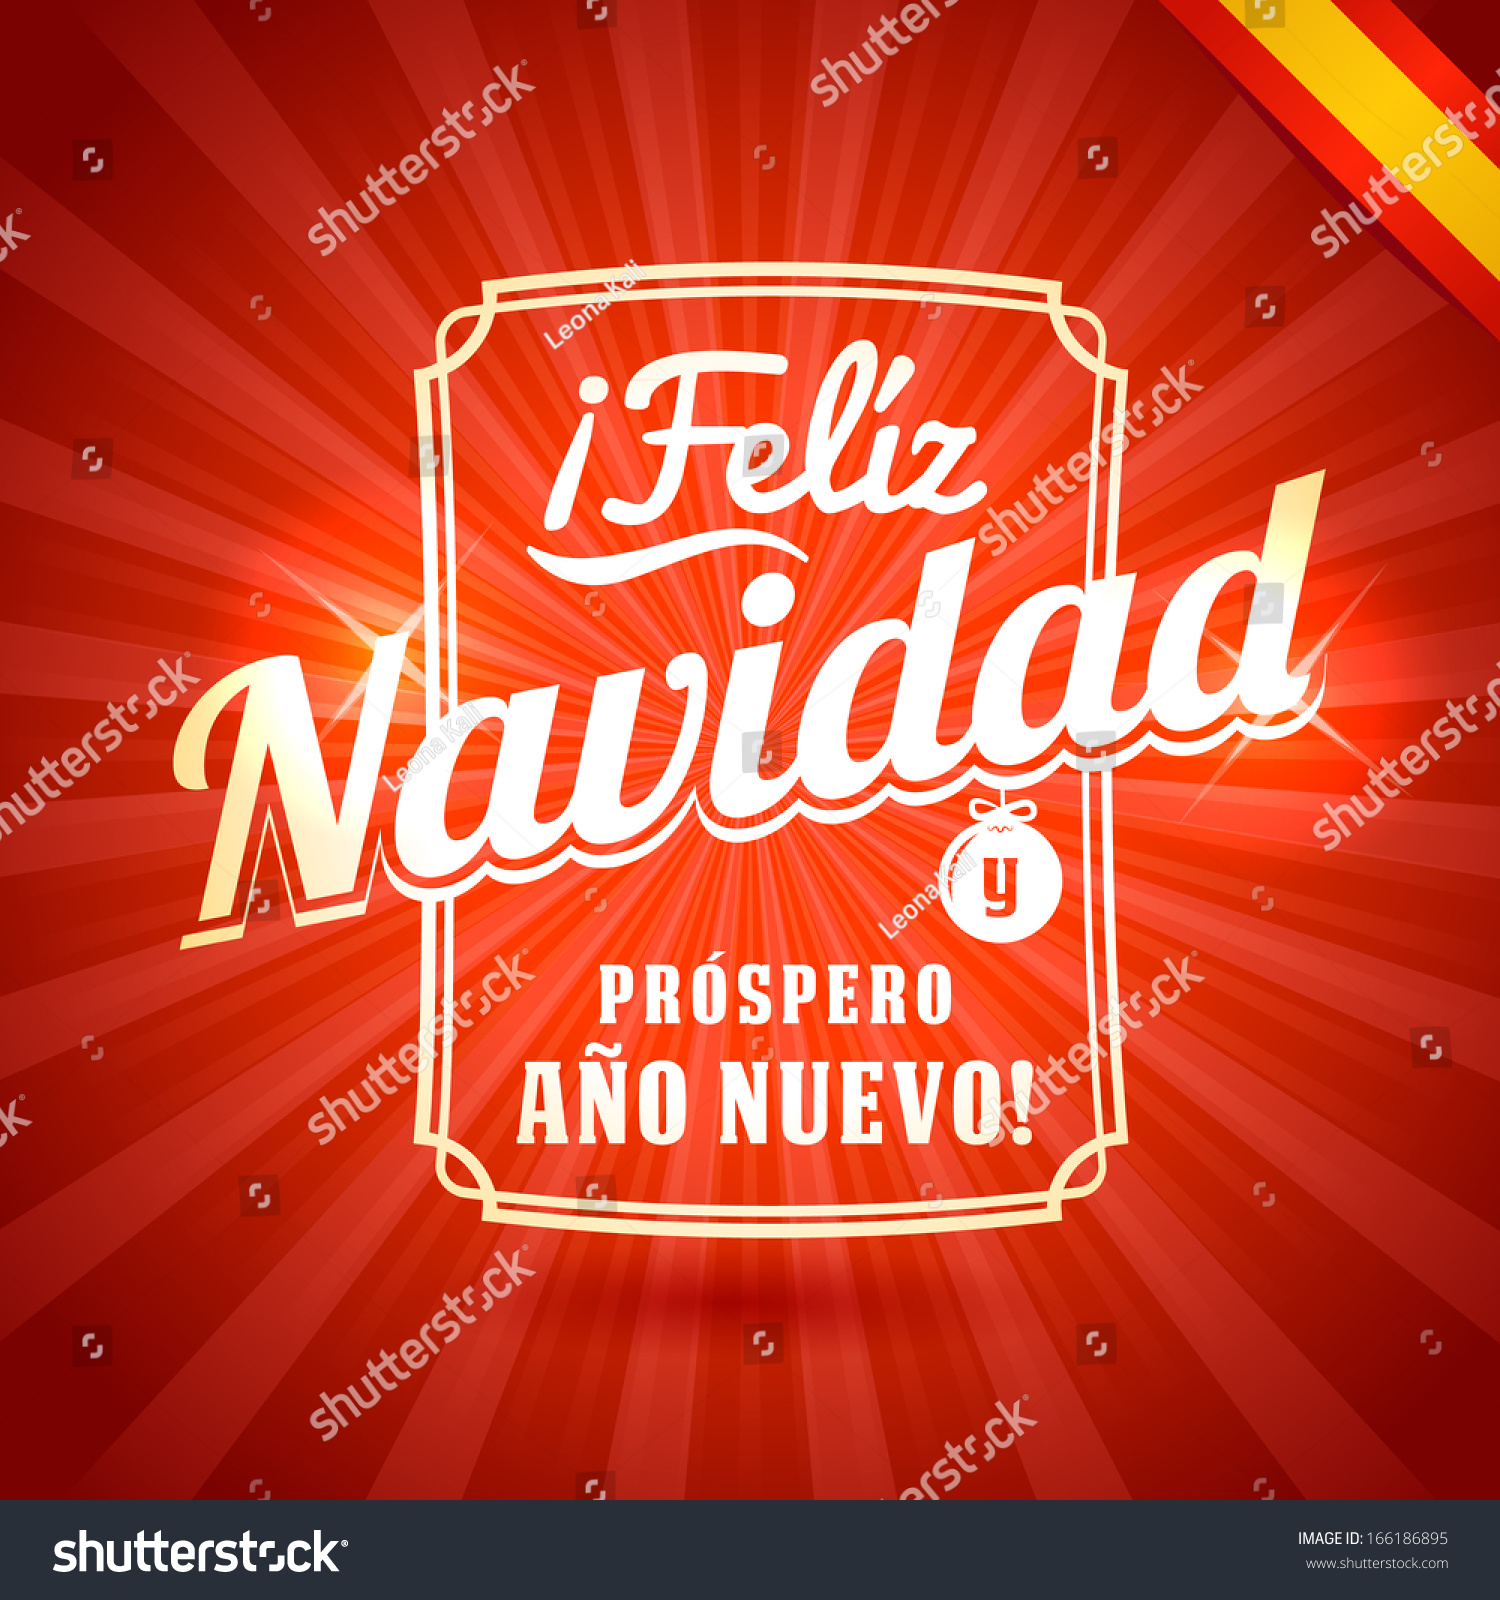 Merry Christmas Happy New Year Greetings Stock Vector ...